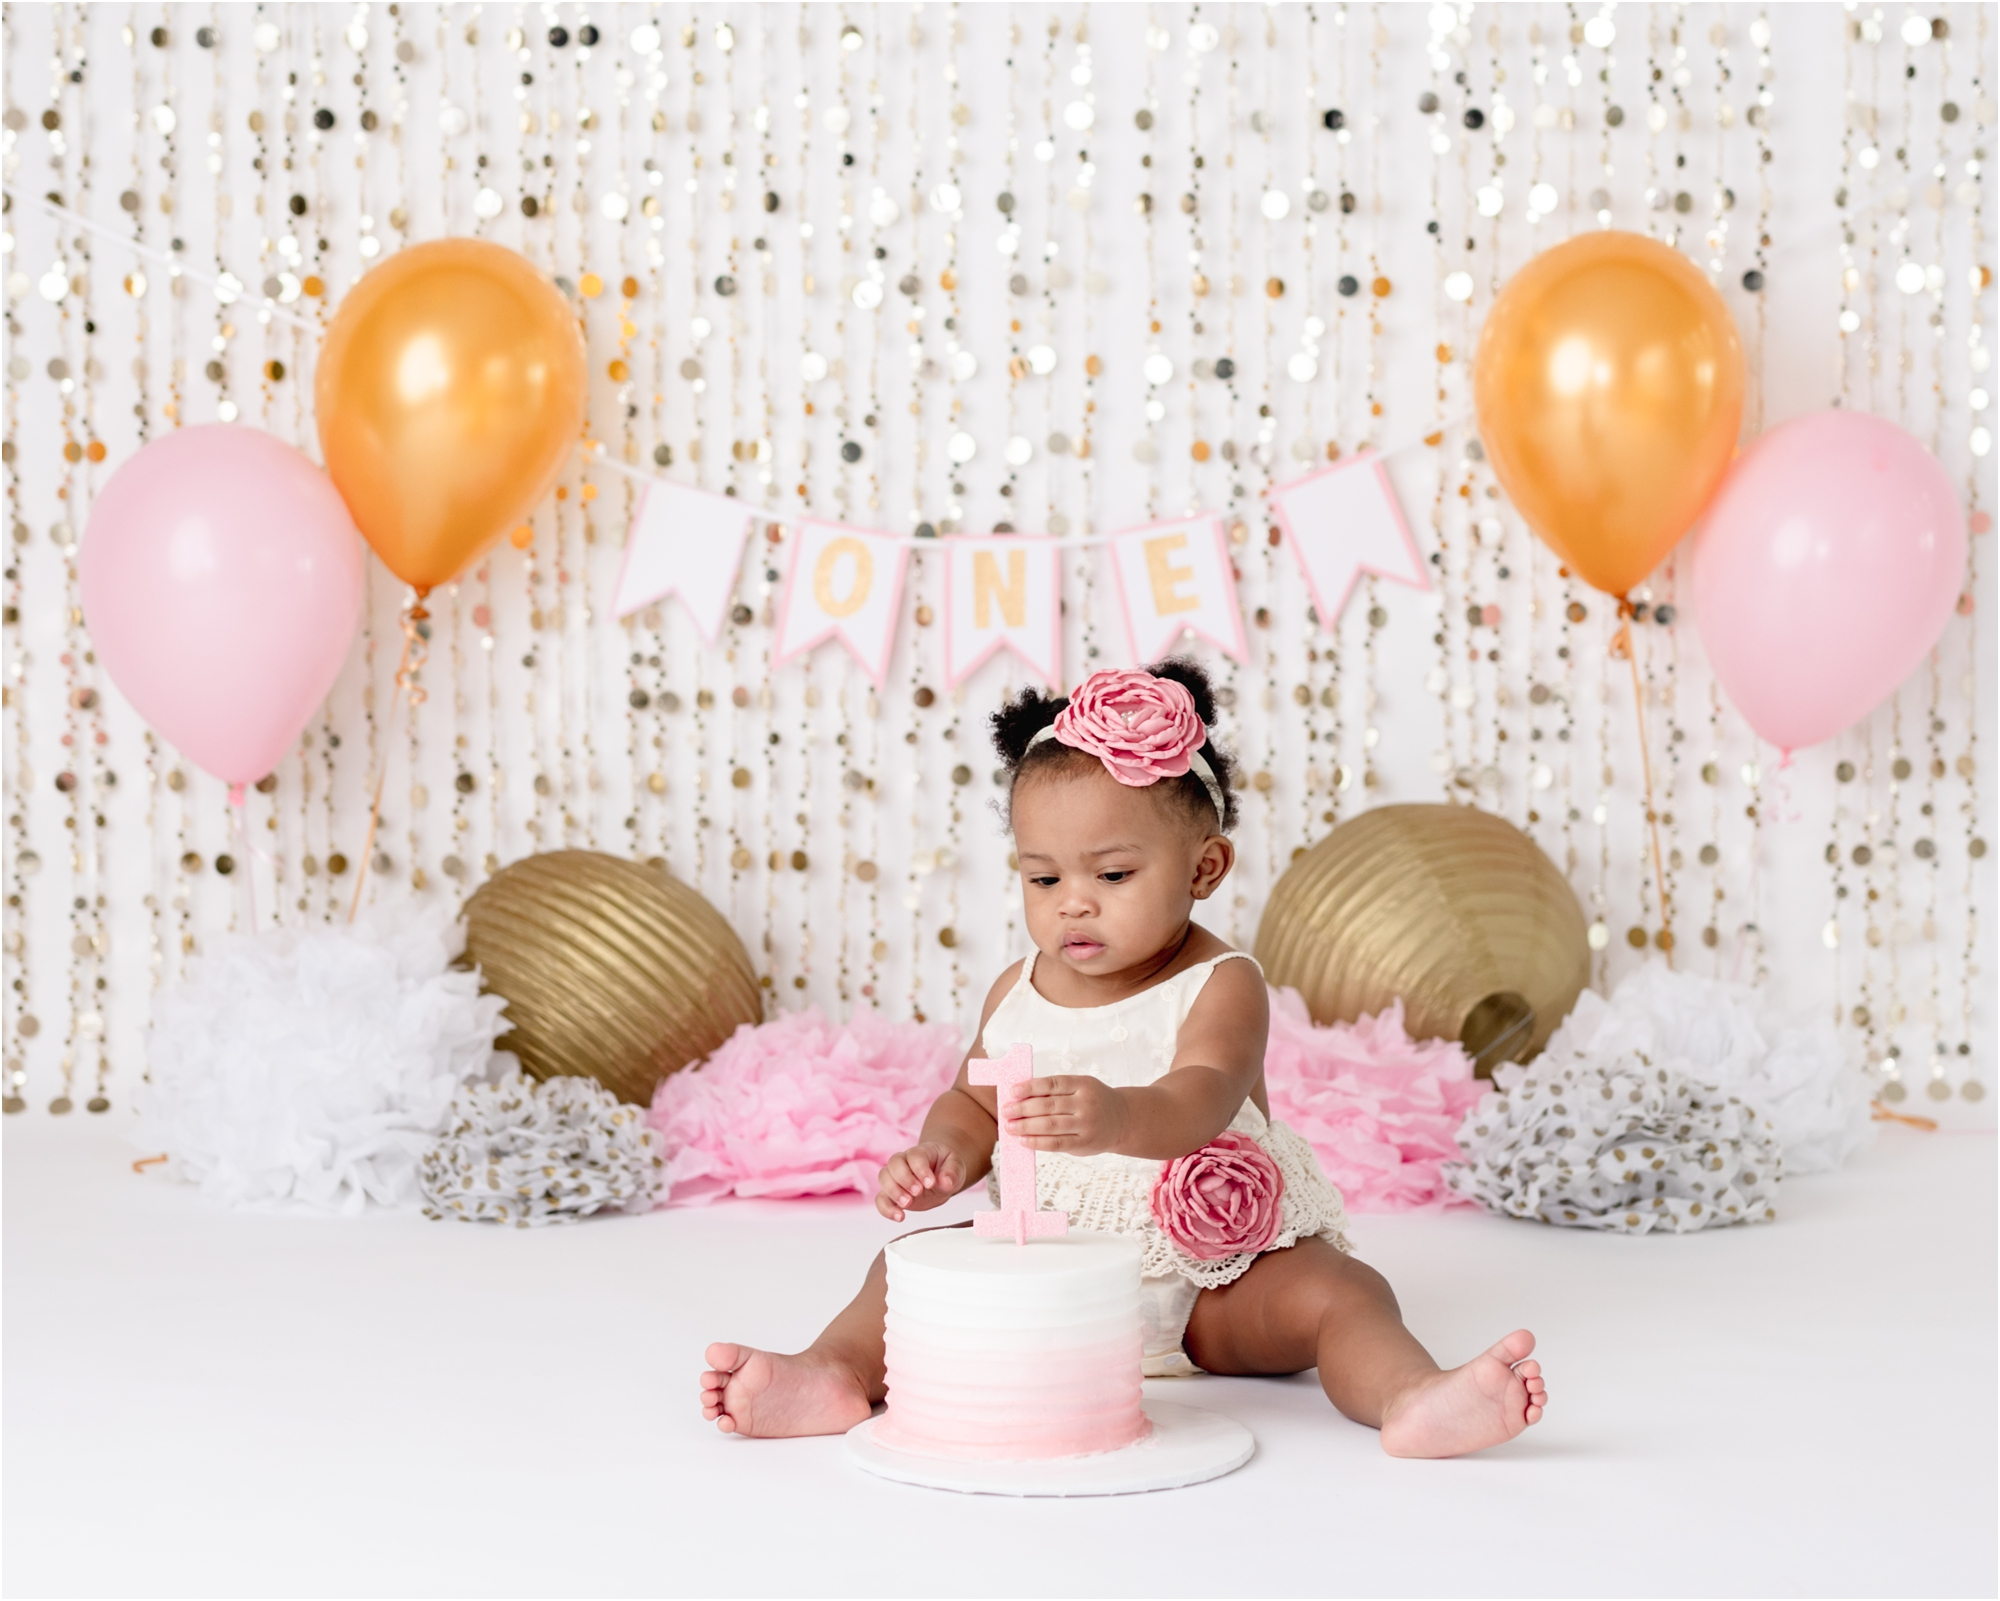 First birthday cake smash photoshoot in Houston studio with family portraits by Lifetime of Clicks Photography.